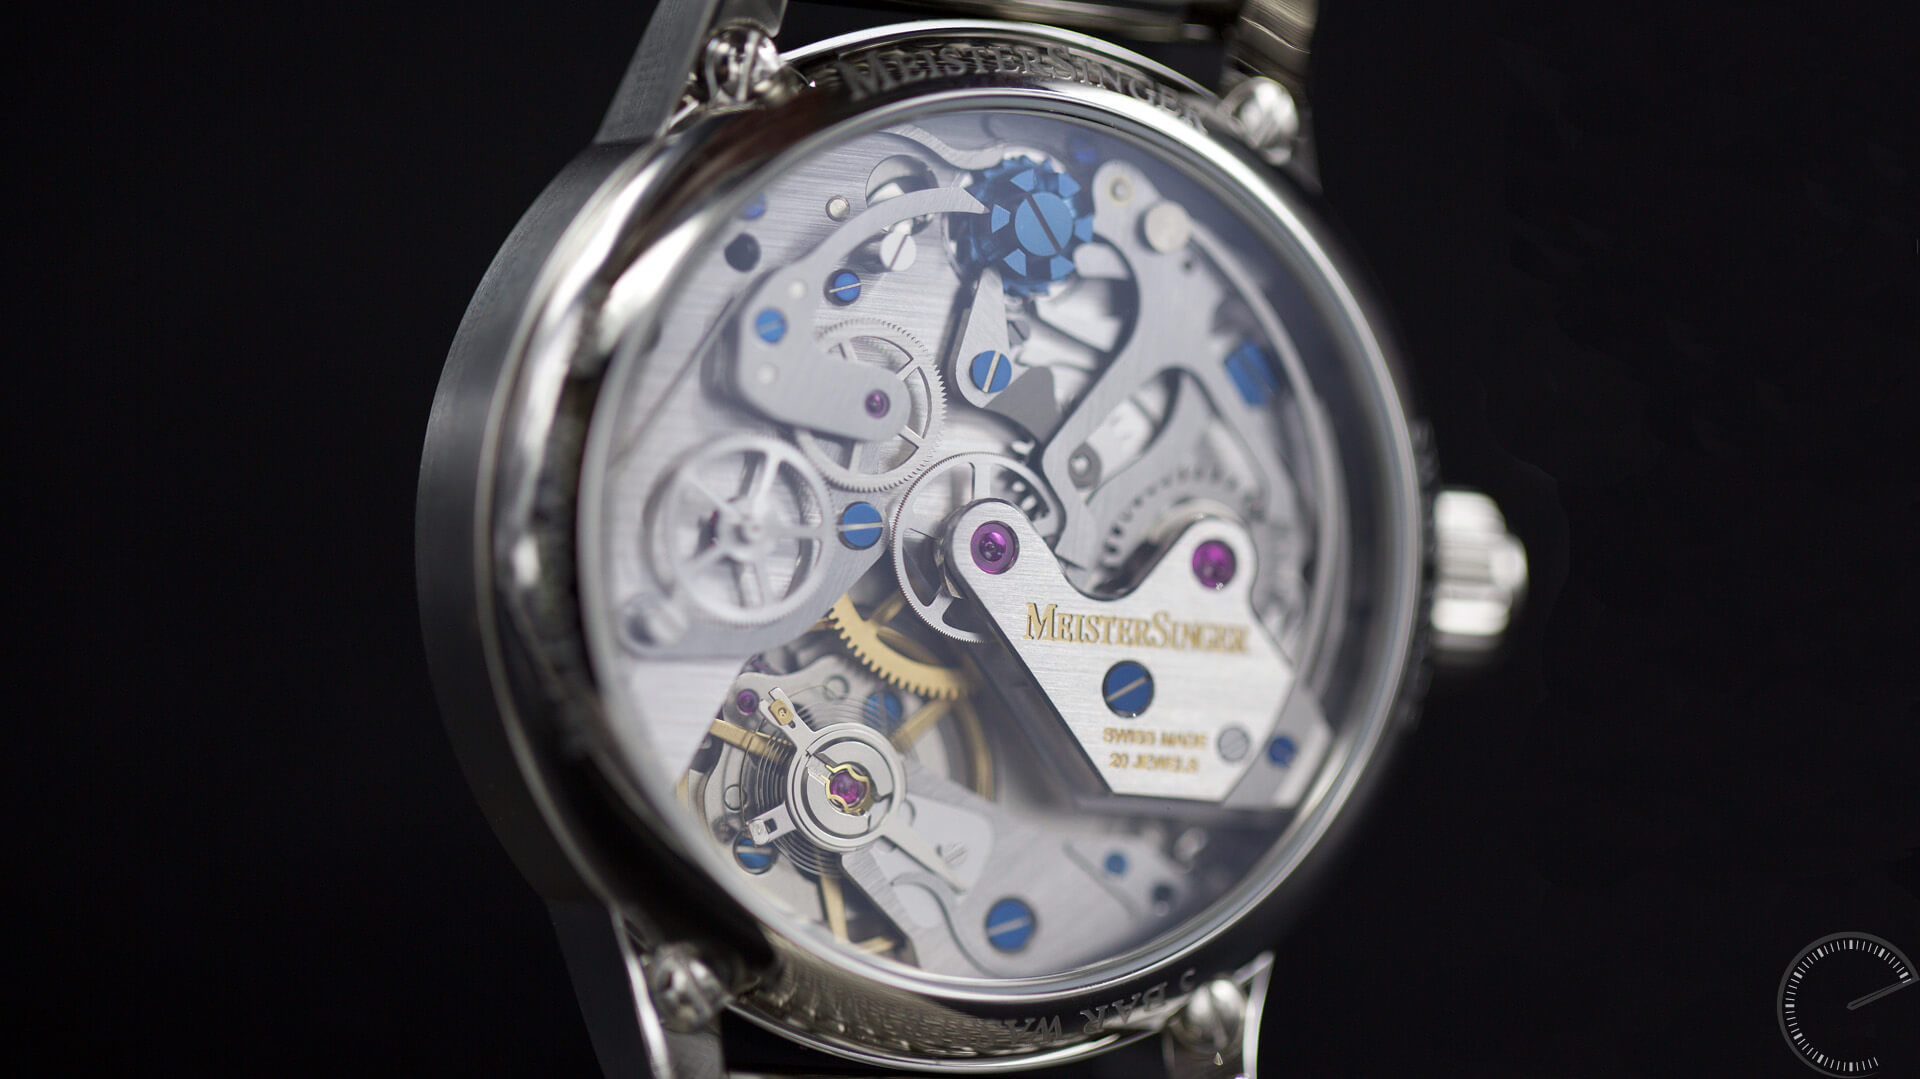 MeisterSinger_Paleograph_Single_Push_Column_Wheel_Chronograph_caseback - ESCAPEMENT Magazine - watch reviews by Angus Davies